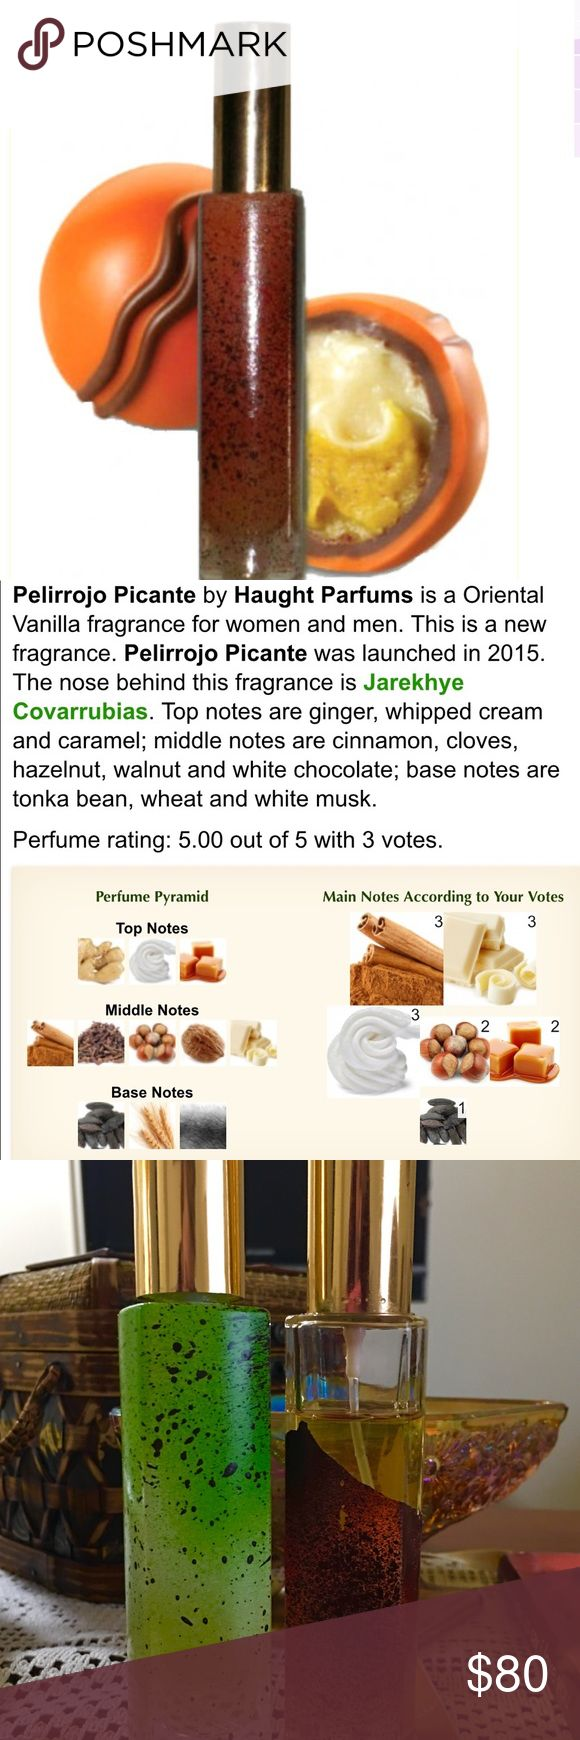 Pelirrojo Picante (chocolate) by Haught Parfums I also still have Jazmine Tease by Haught Parfums Limited Ed Oriental Chocolate Vanilla fragrance.  I included a full description in picture above. It has some wear on the outside paint but is still 85% full and good to go. Very High End. The makers of Chocolate Wasted. Might sell as pair at discounted price. Haught Parfum Other